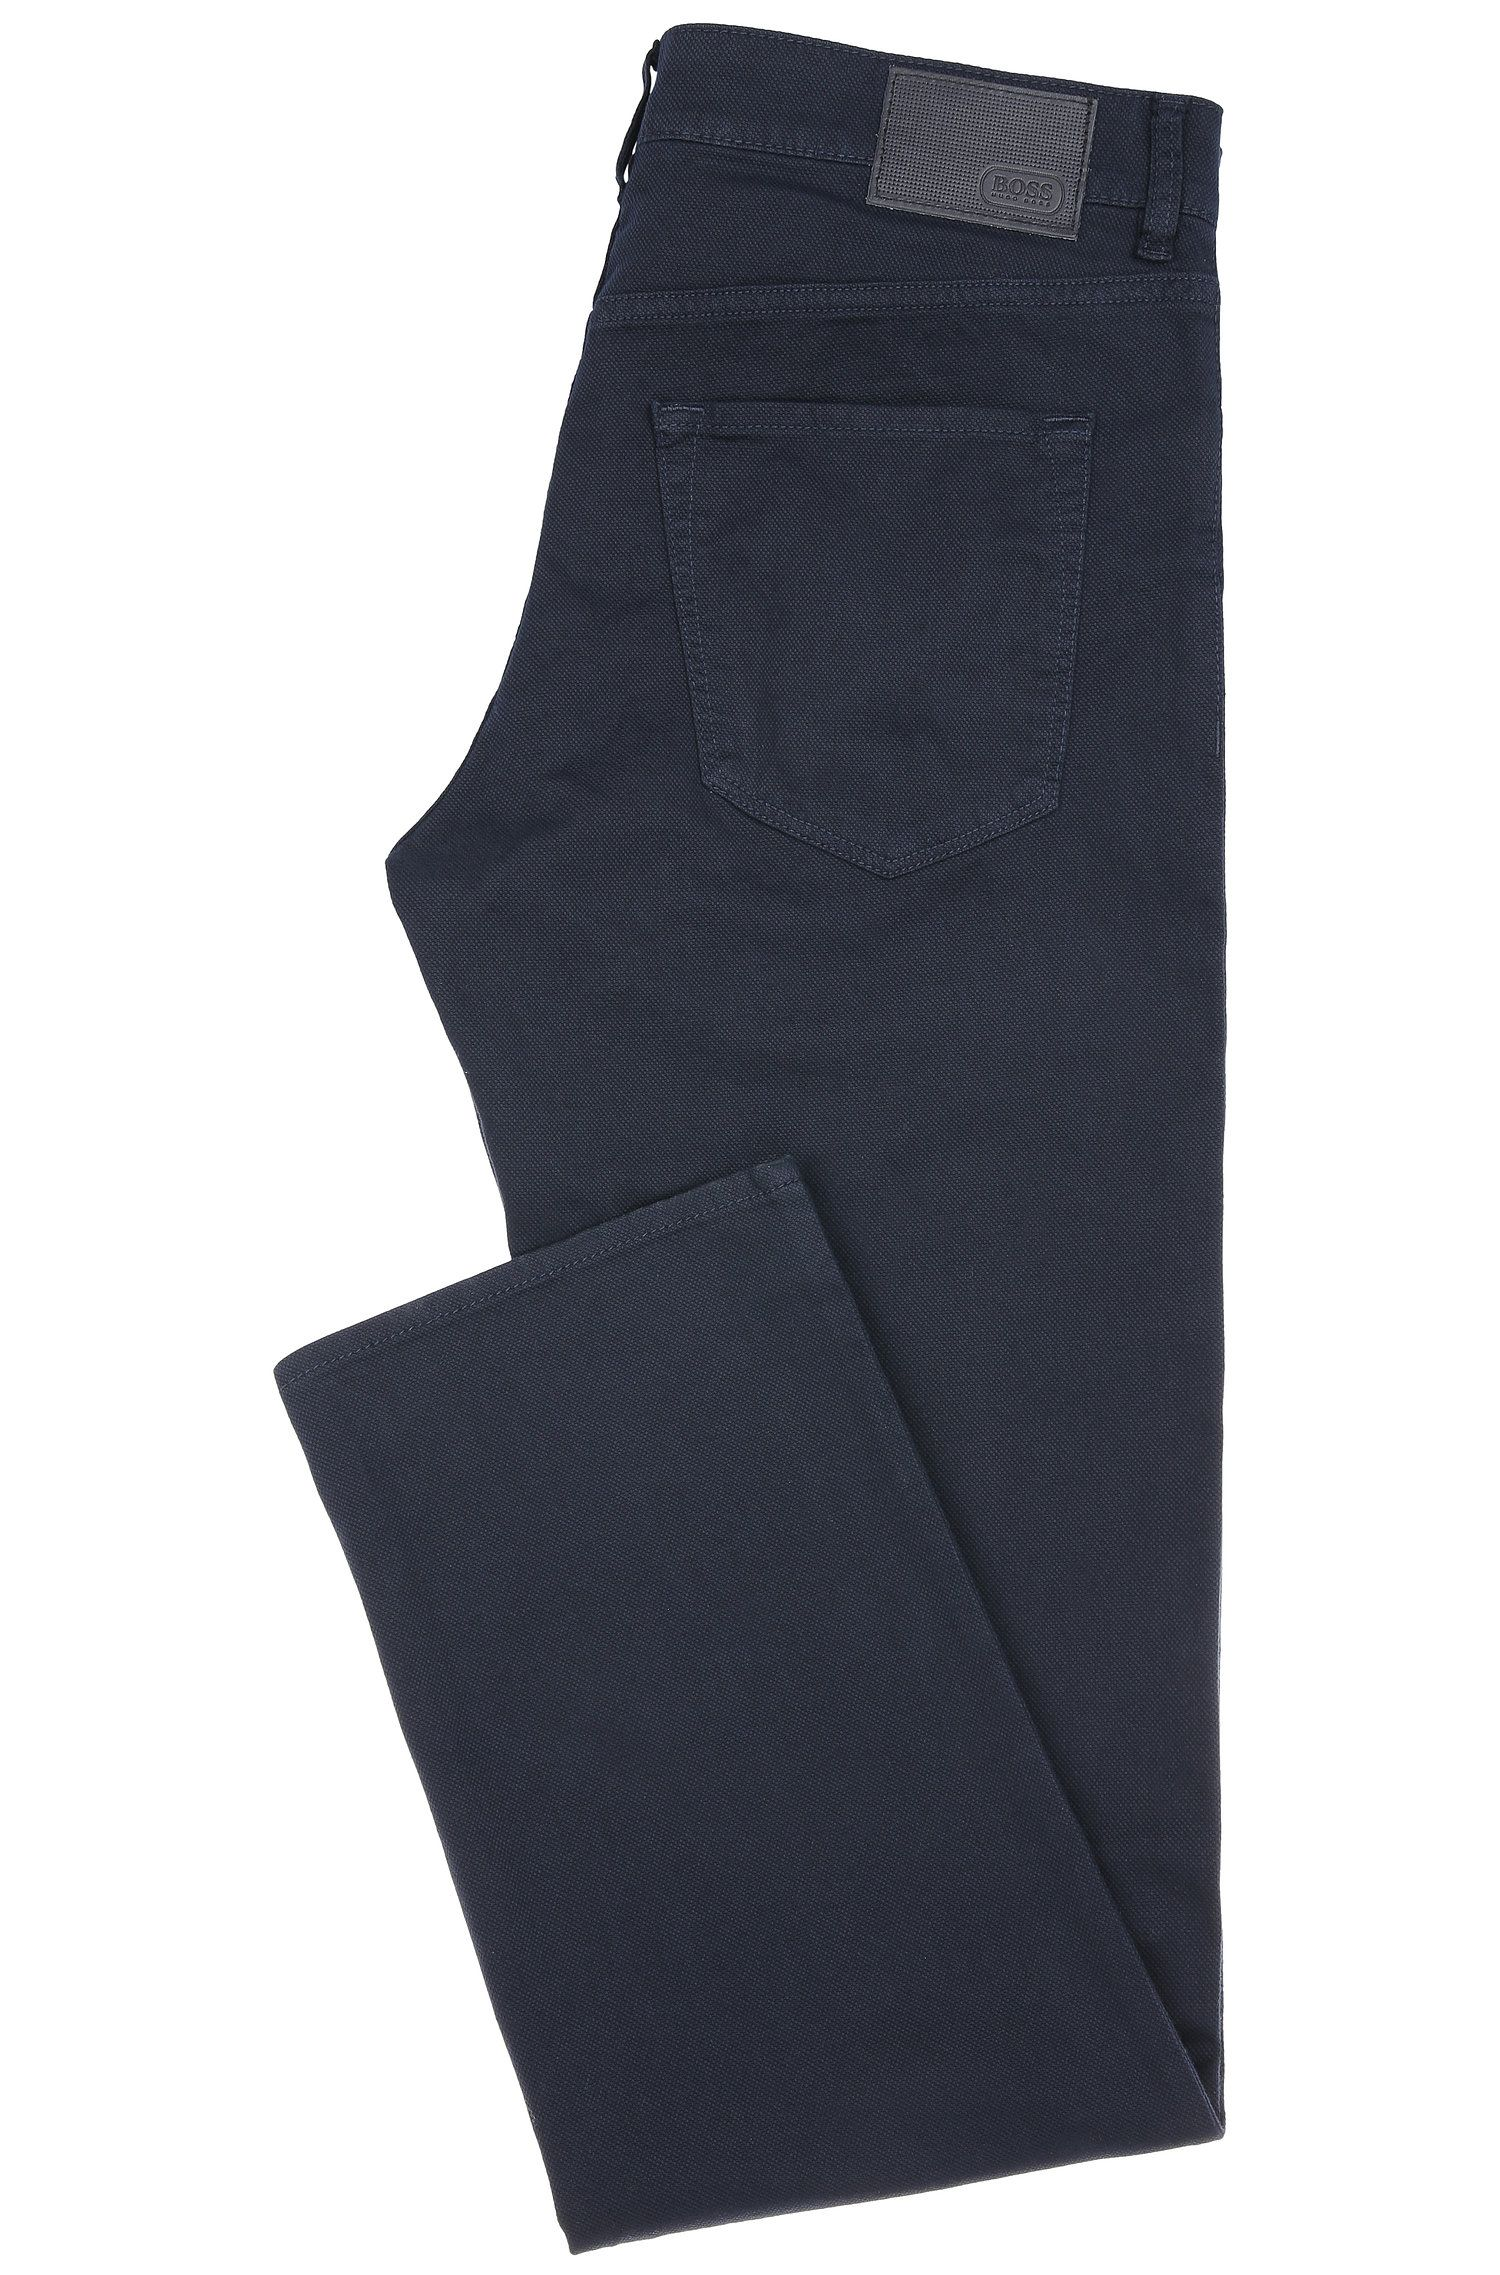 Jeans Regular Fit en coton stretch : « C-Maine1-2-20 »